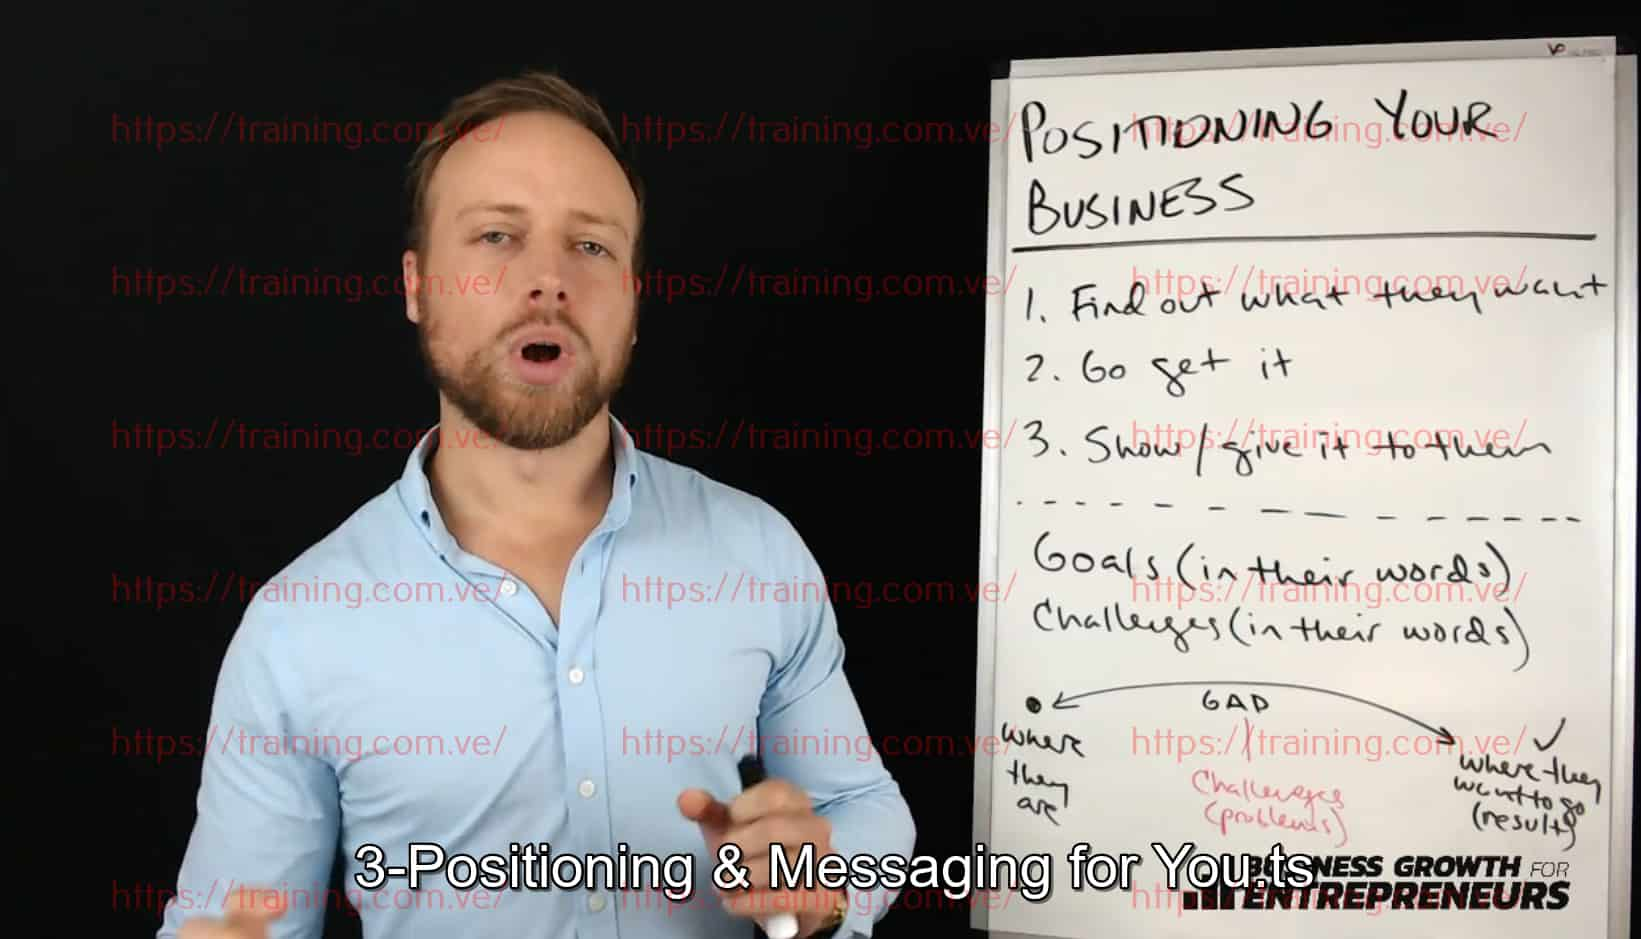 Business Growth for Entrepreneurs by John Whiting Coupon